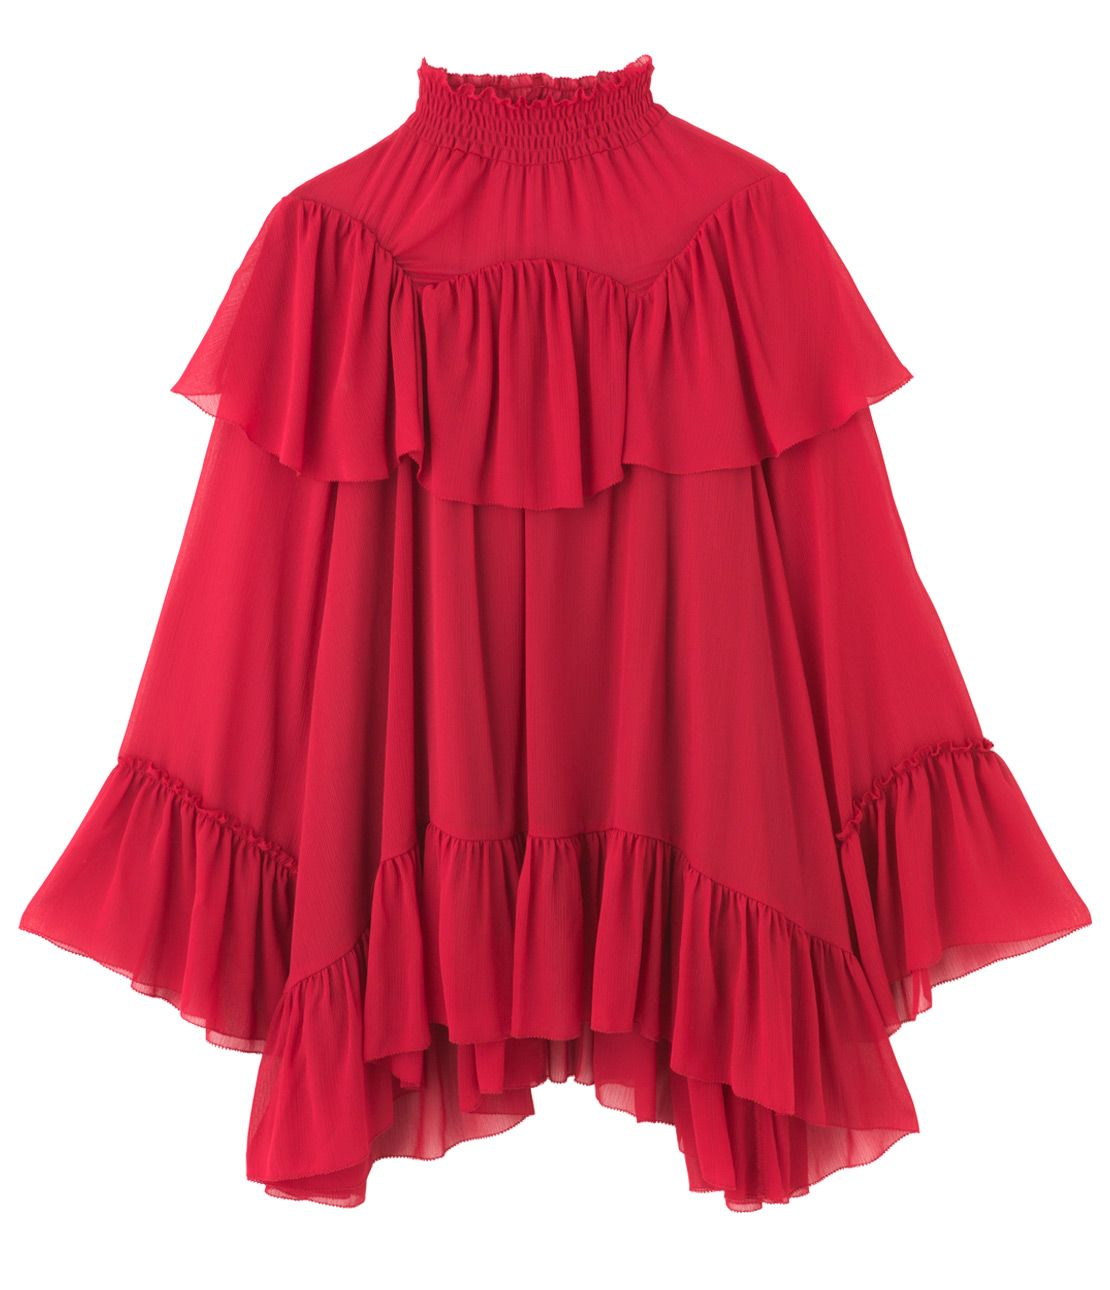 Stand-up collar ruffle tunic